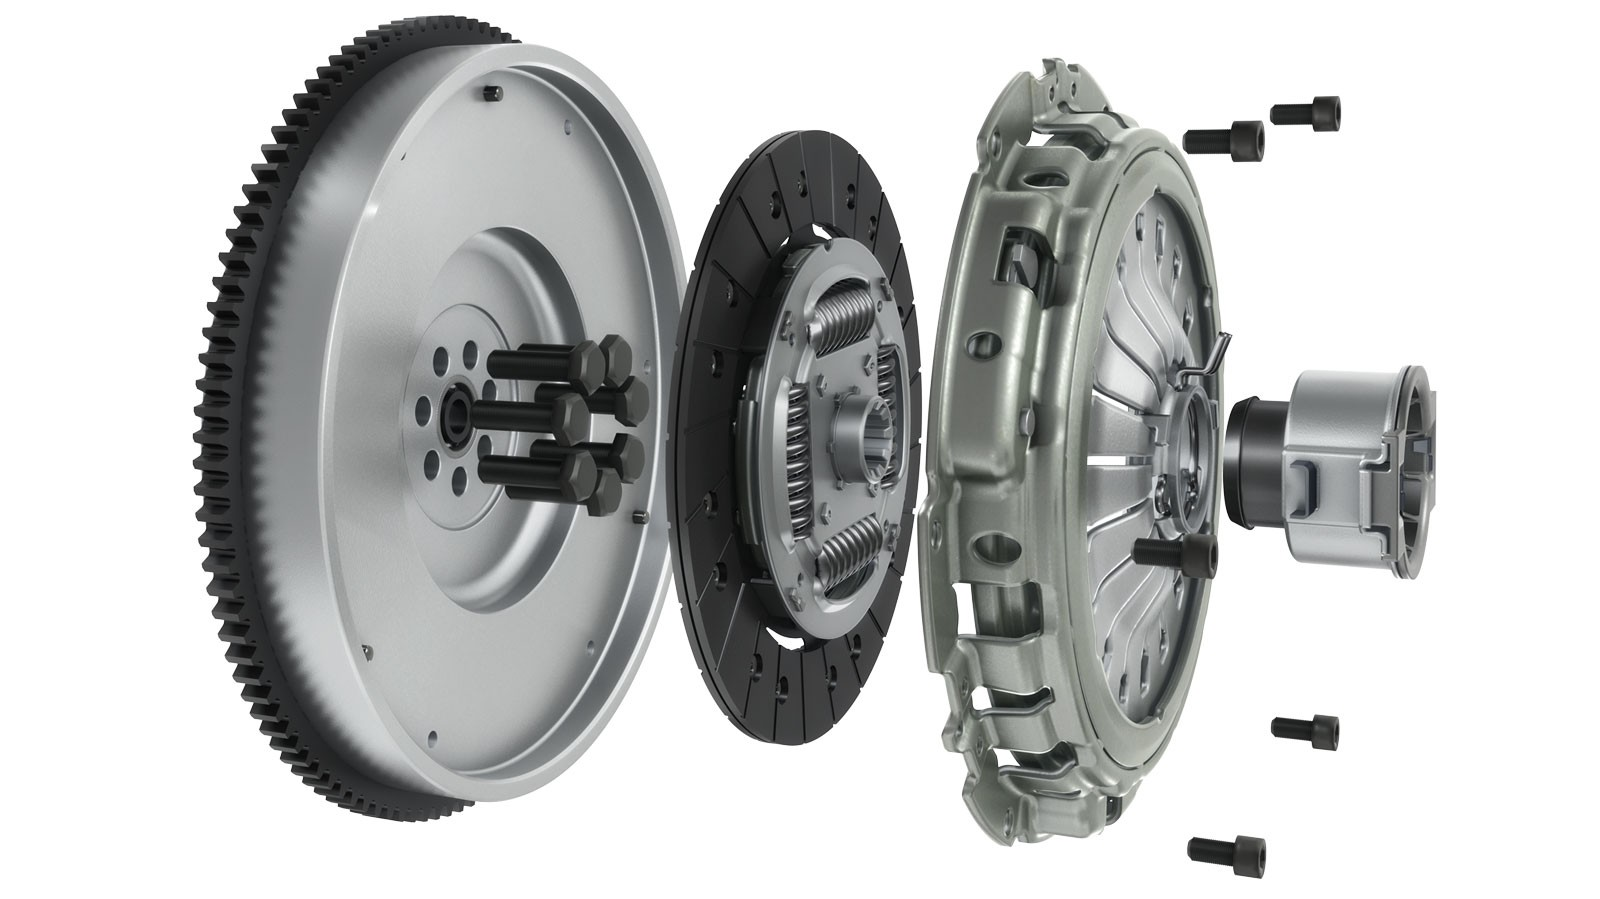 VS-Transmission-Systems-Clutch-KIT4P-pull-type-835015